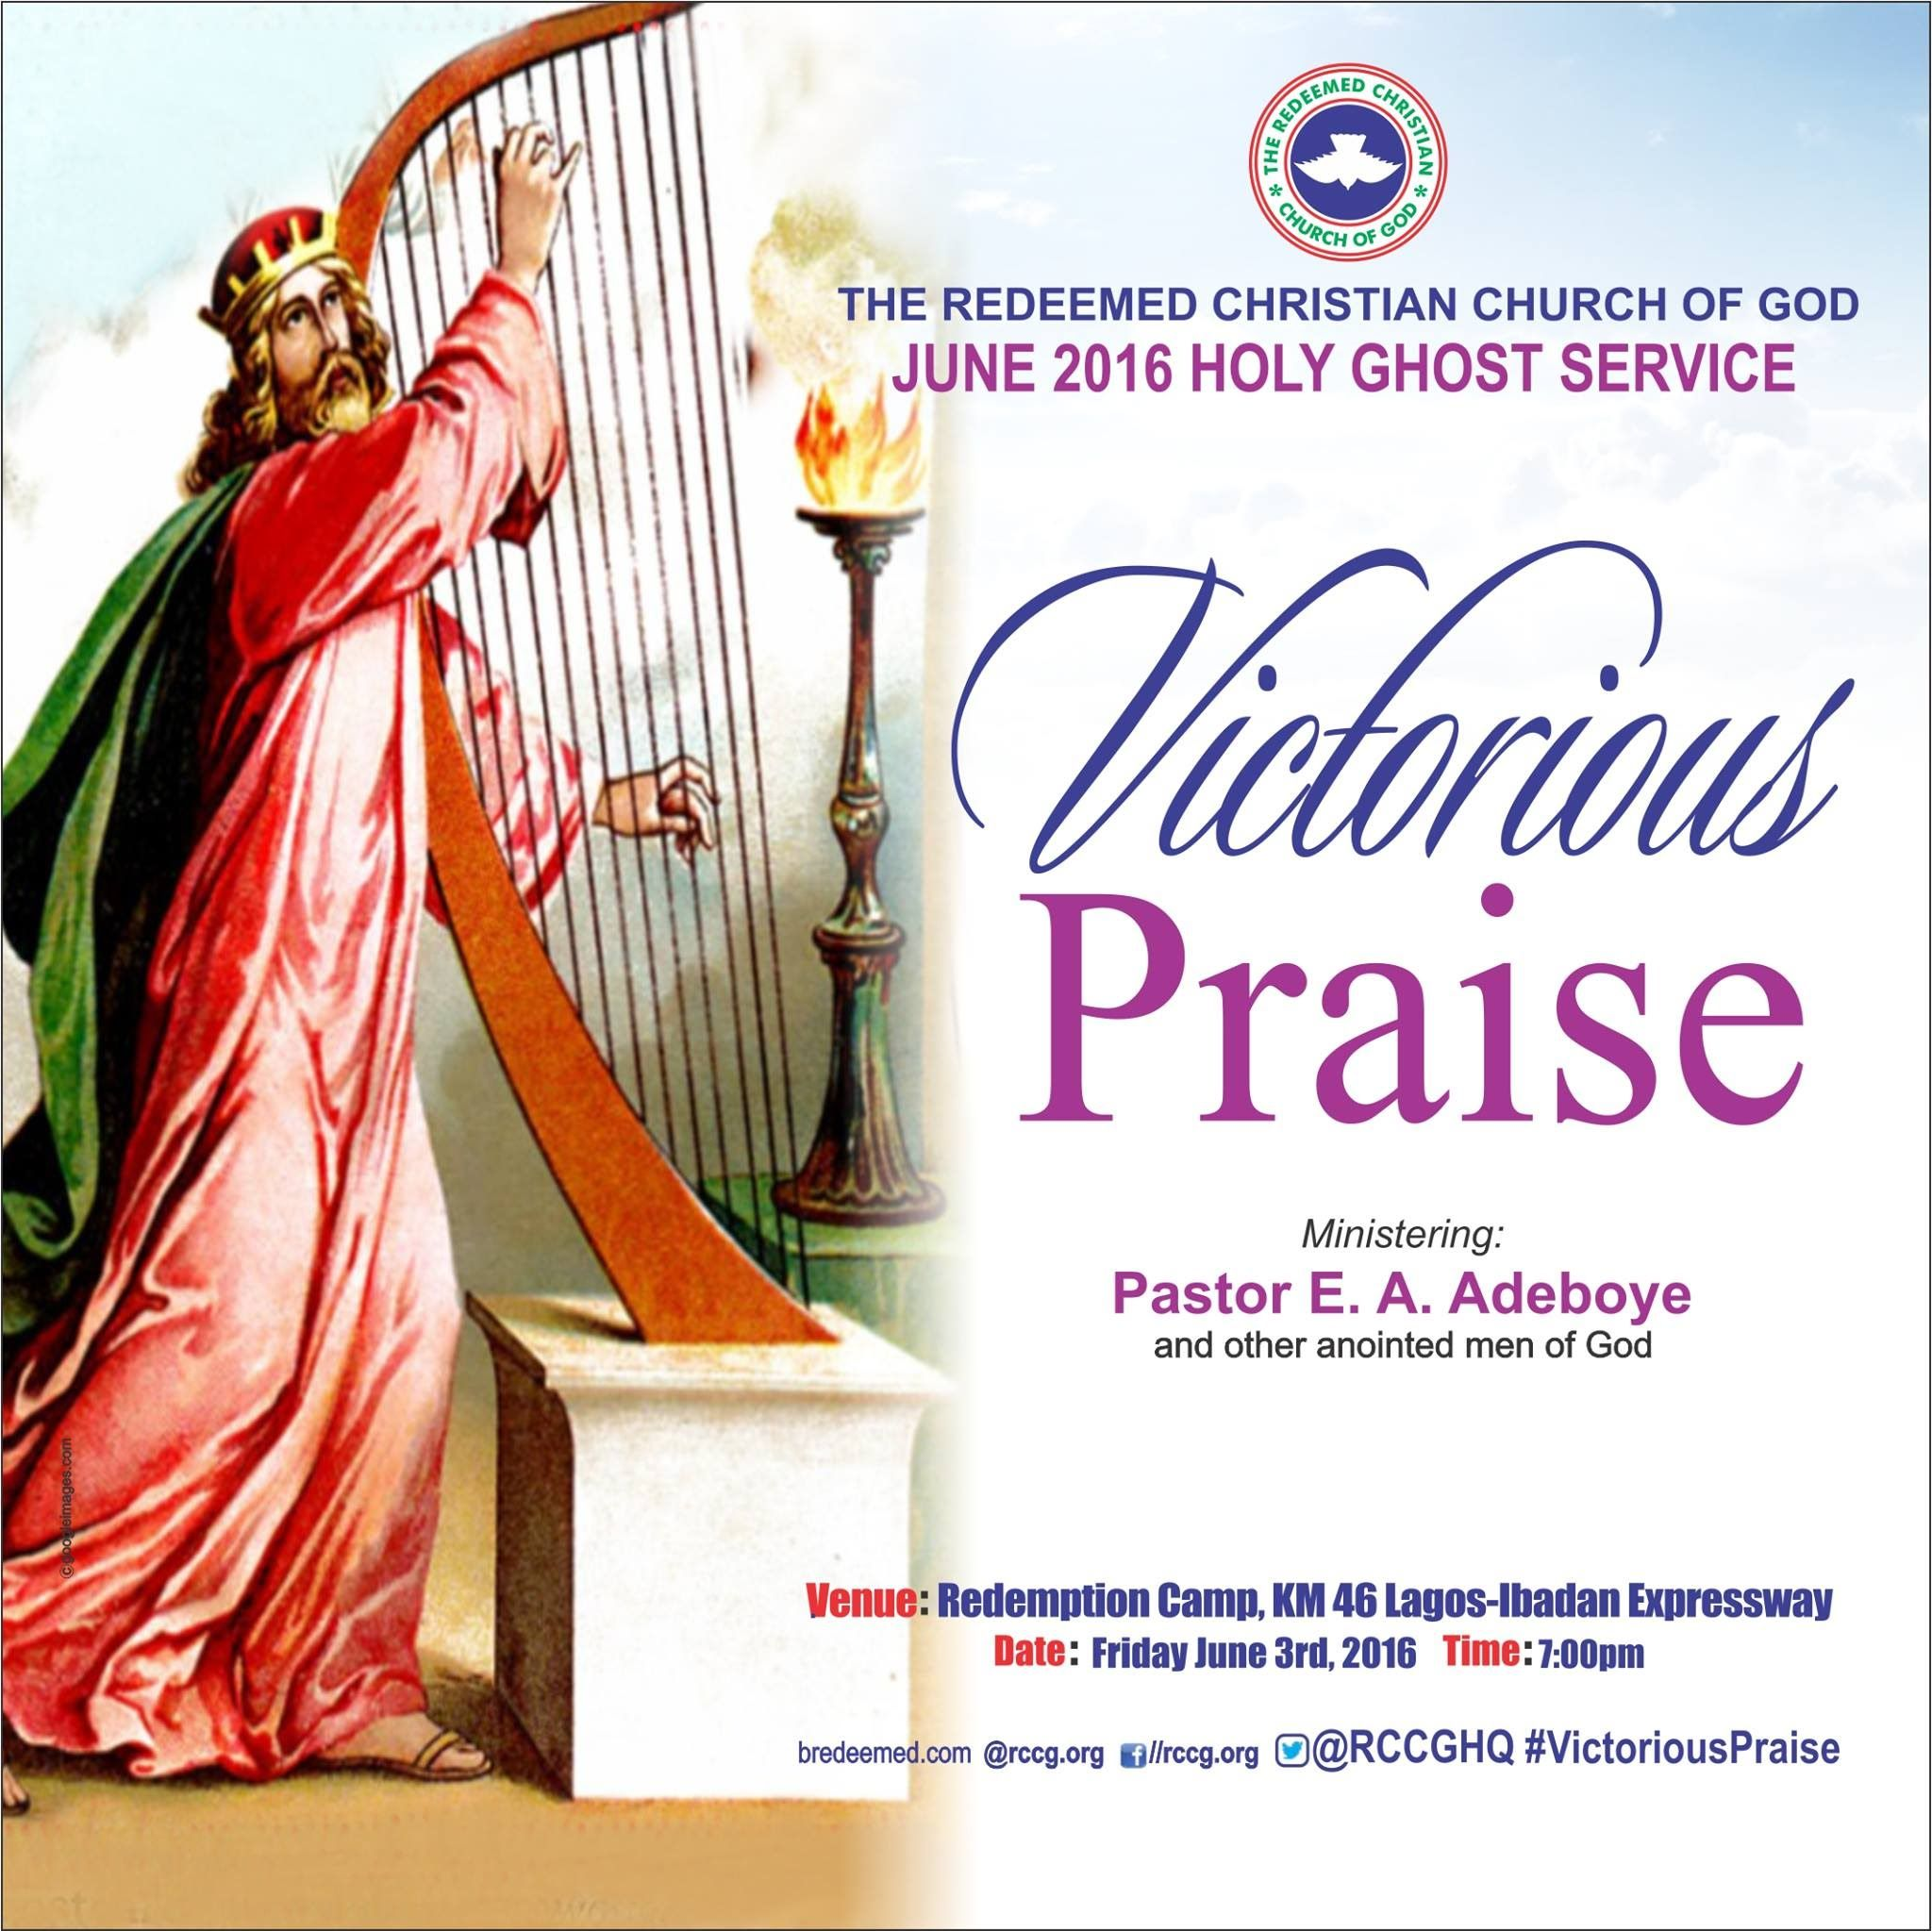 JUNE 2016 HOLY GHOST SERVICE- VICTORIOUS PRAISE